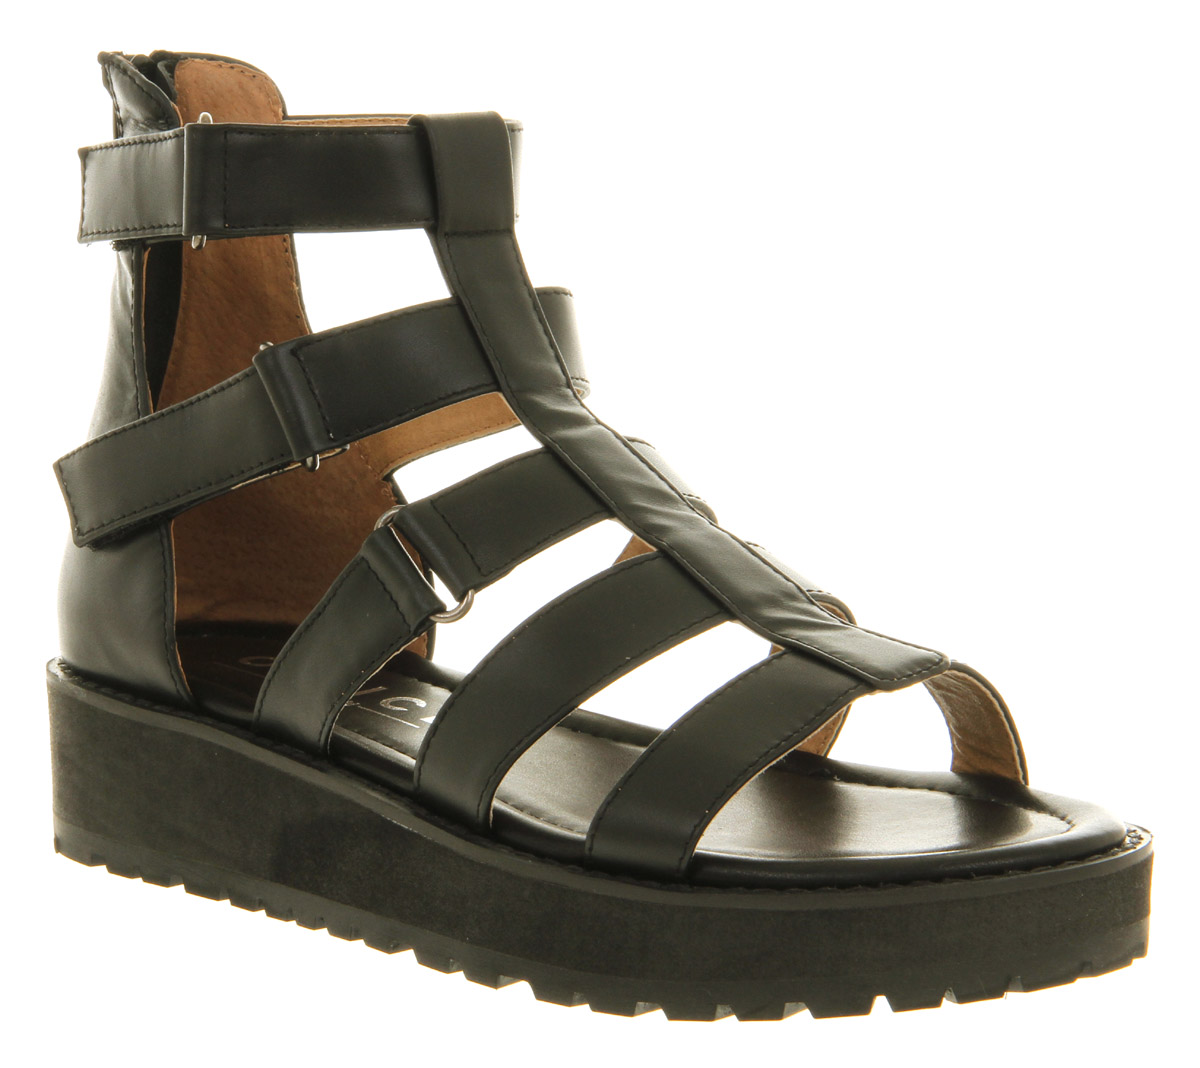 Womens-Office-London-Champion-Gladiator-Black-Leather-Sandals